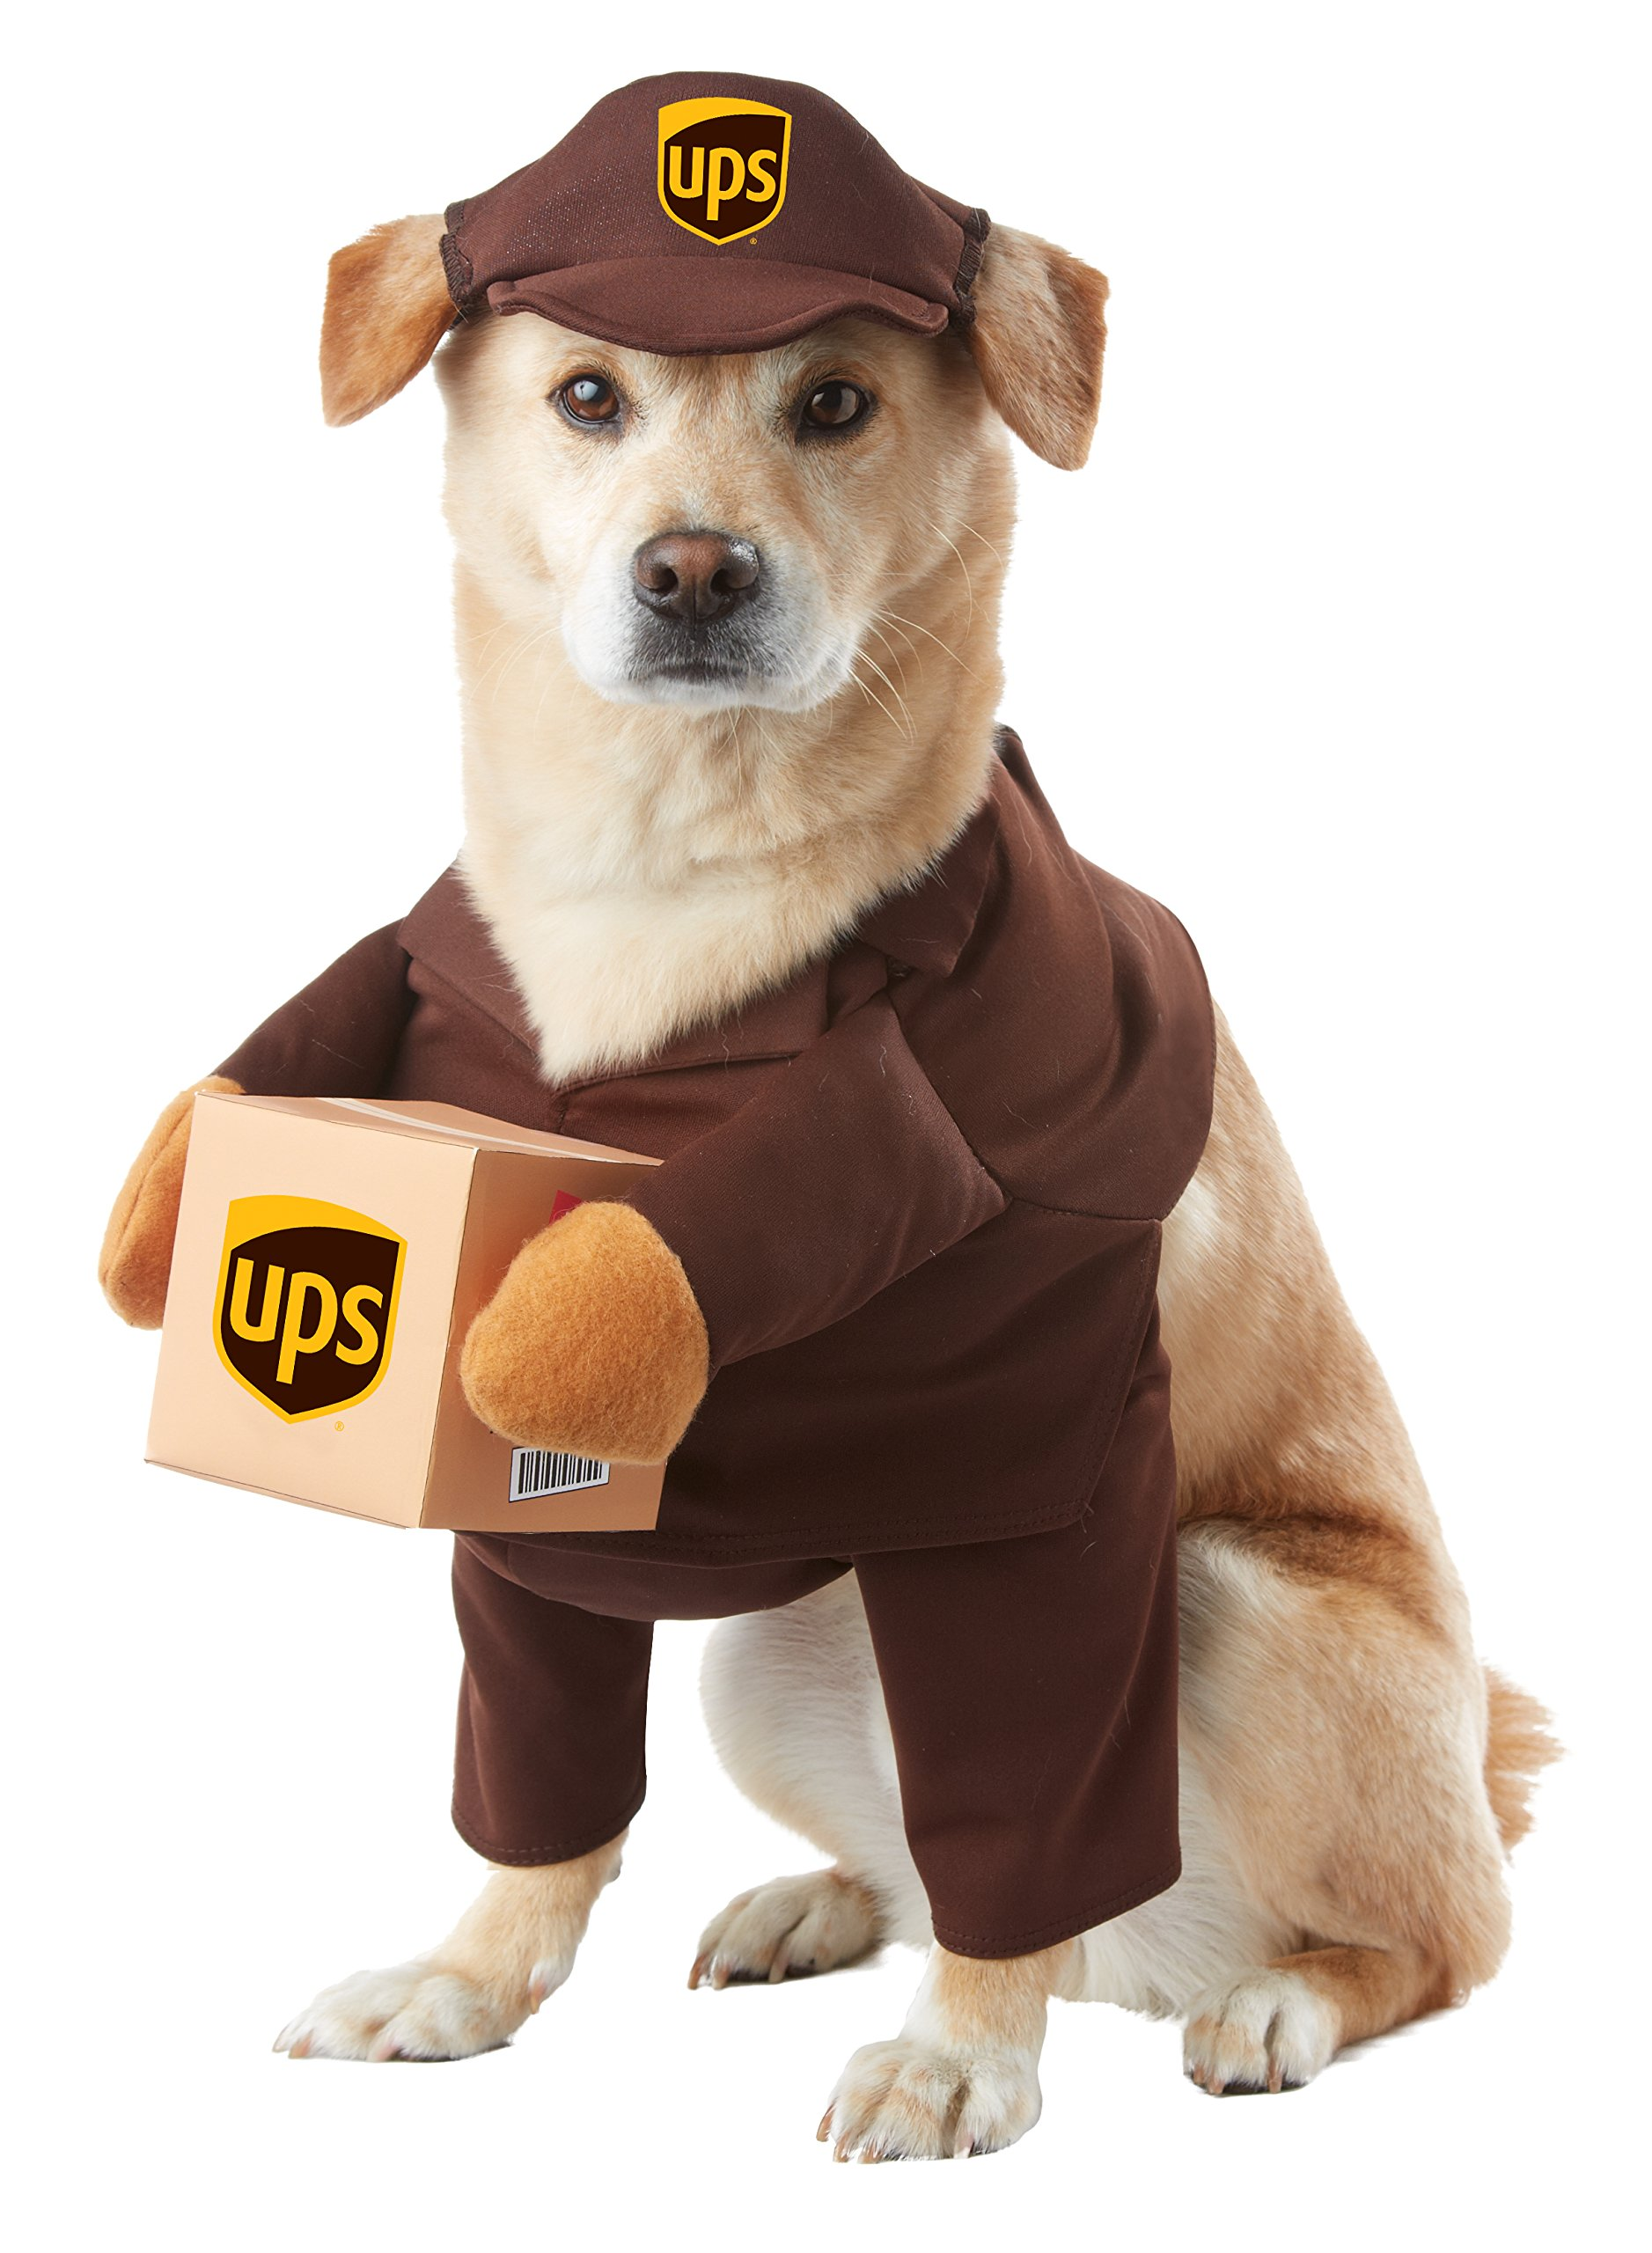 California Costumes Collections PET20151 UPS Pal Dog Costume, Large